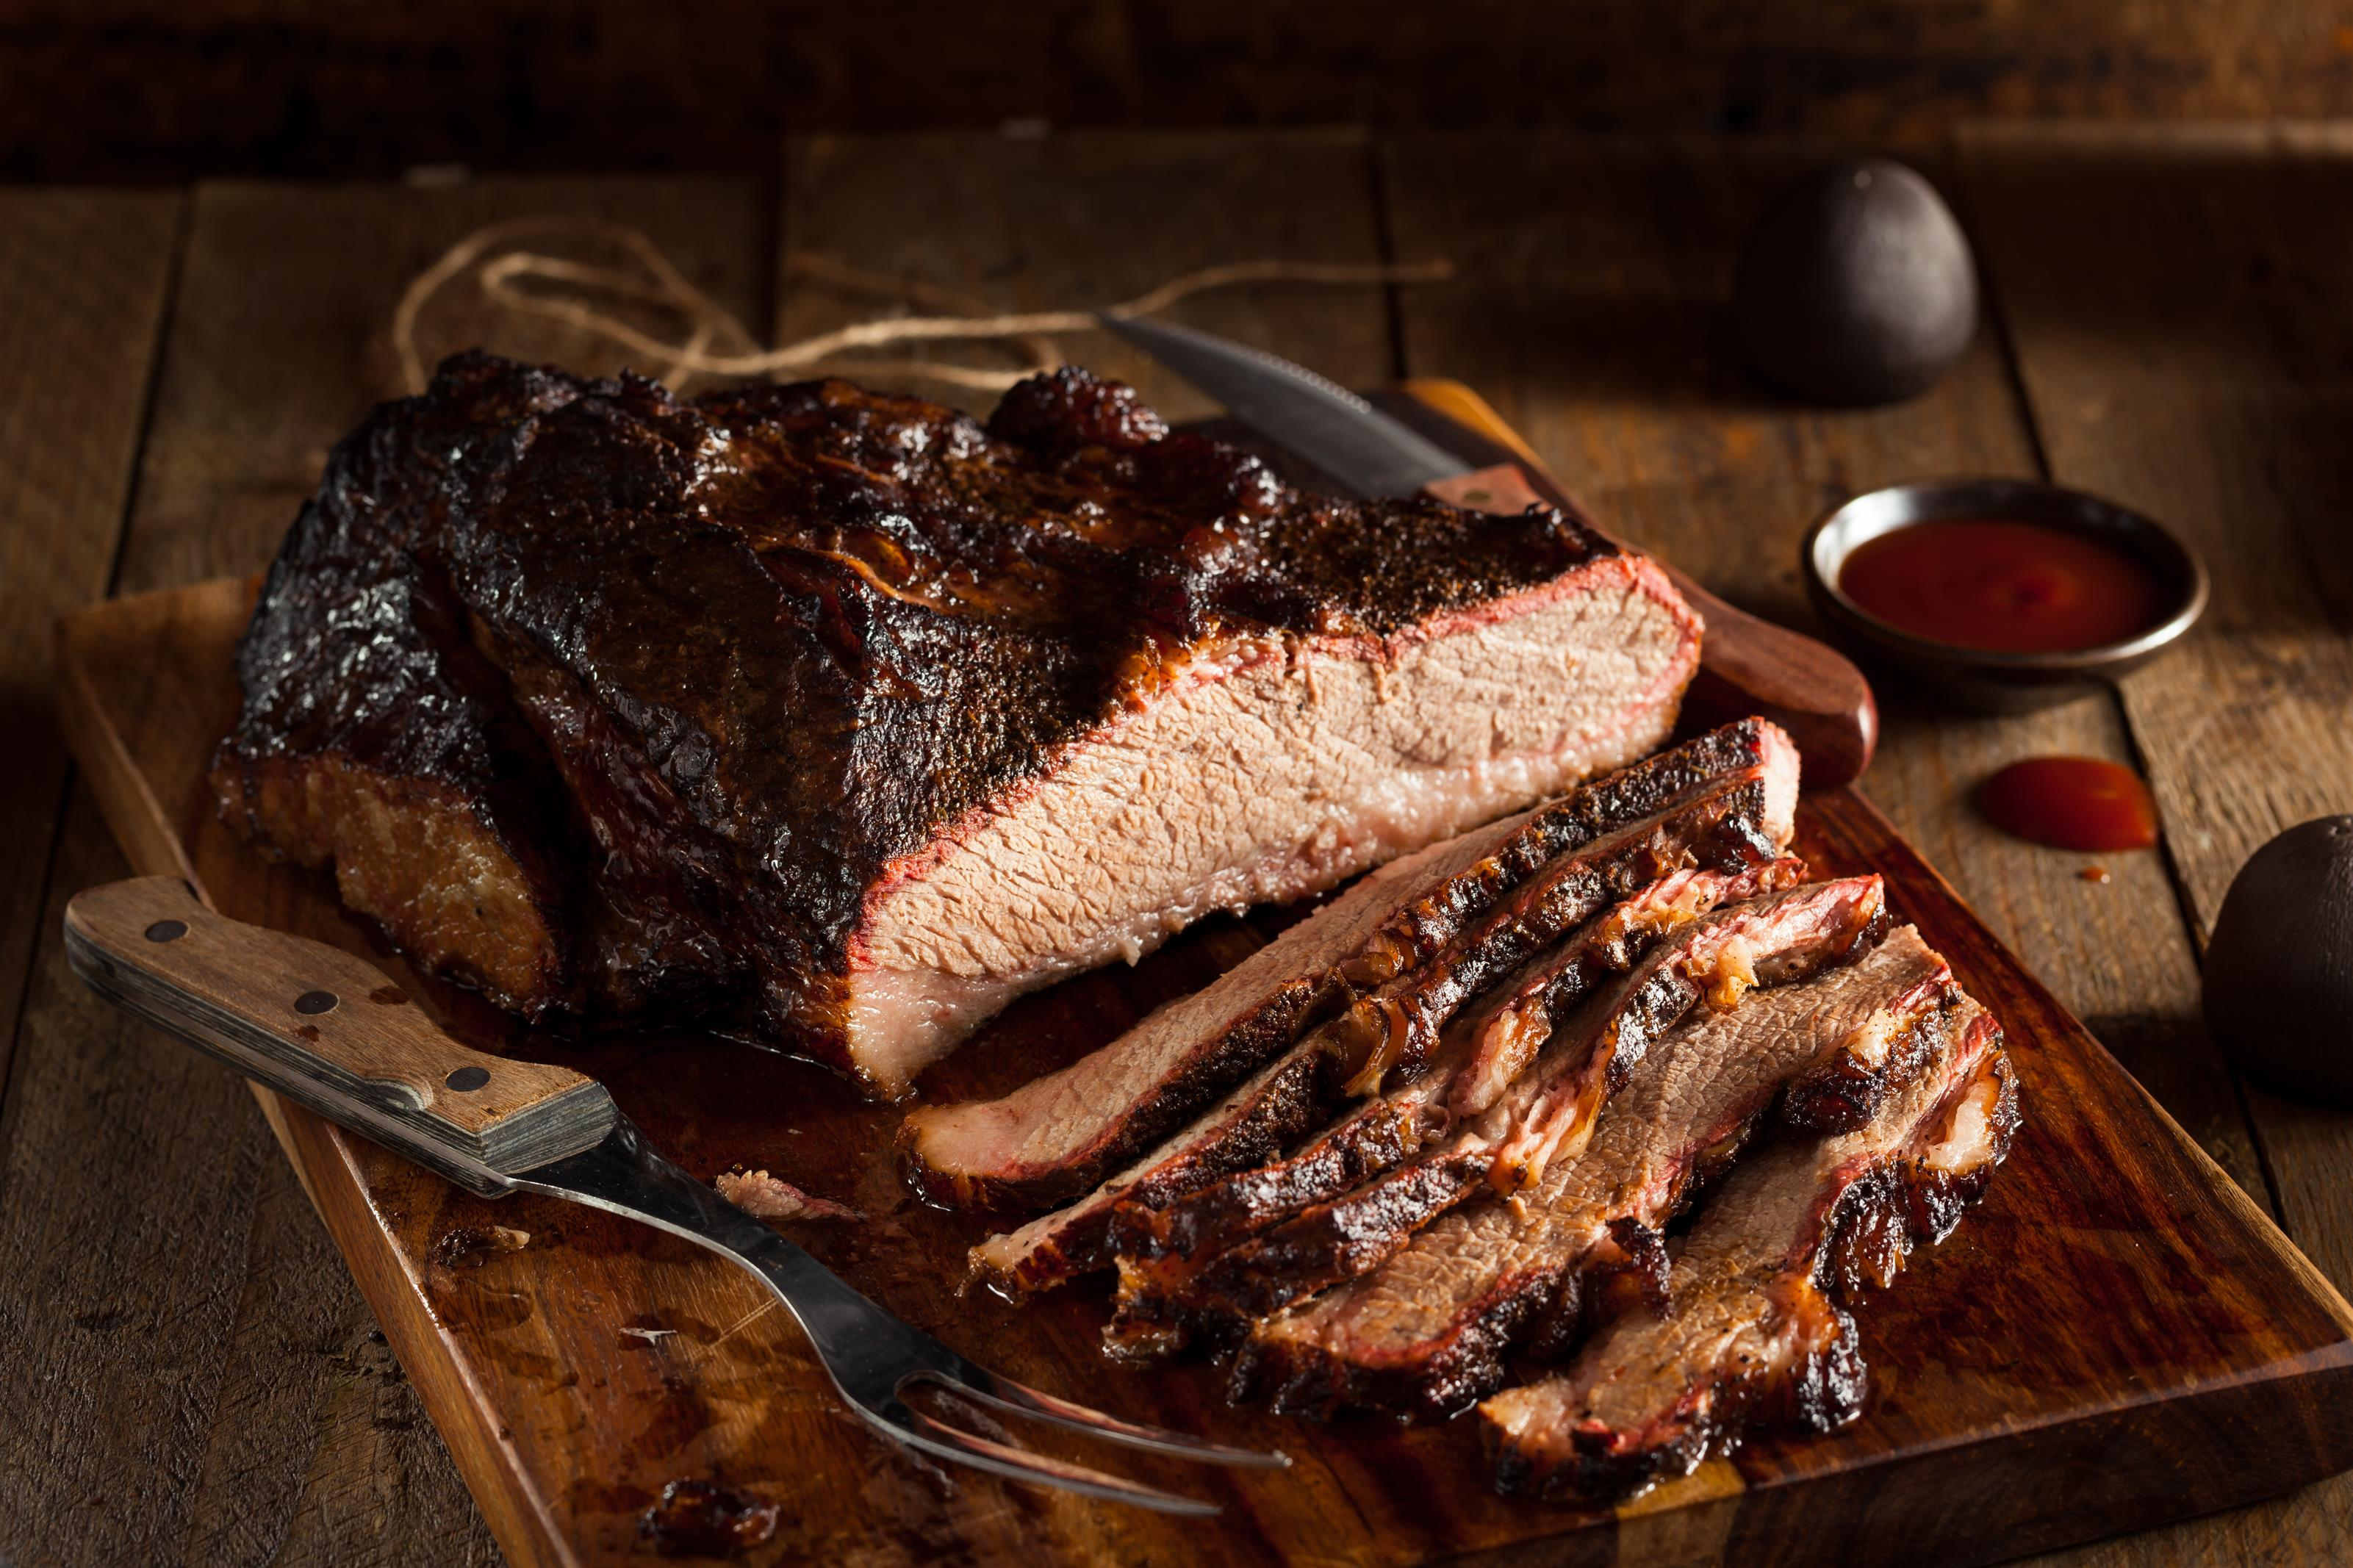 Smoked slab of meat sliced thinly